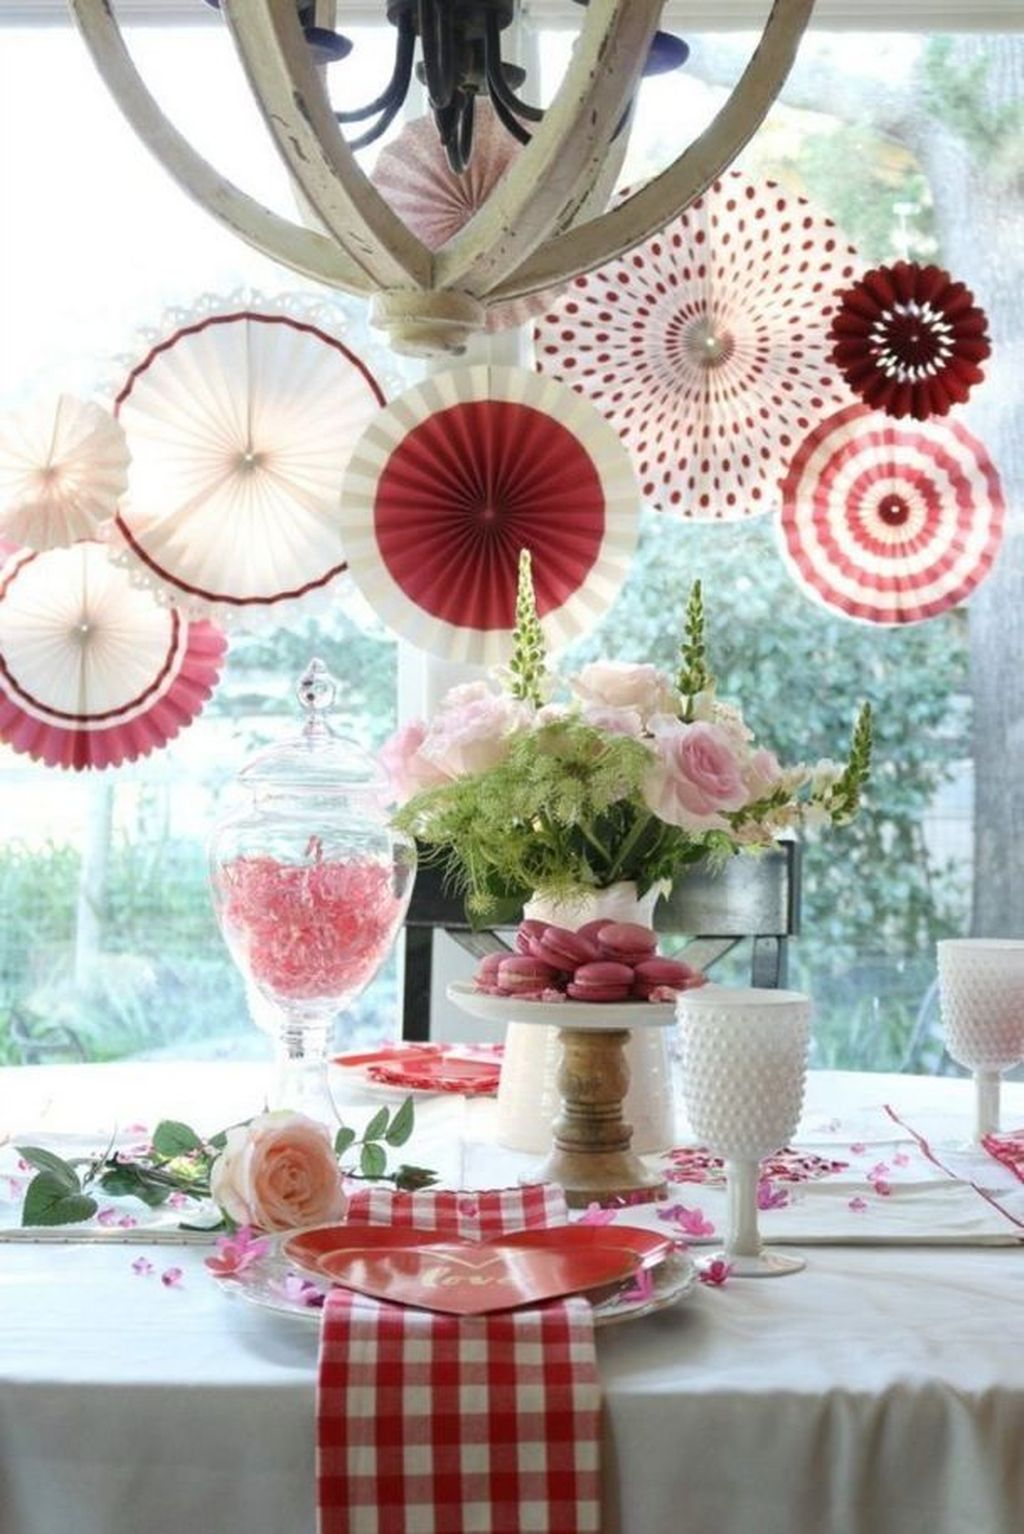 Amazing Valentine Interior Decor Ideas Trend 2020 25